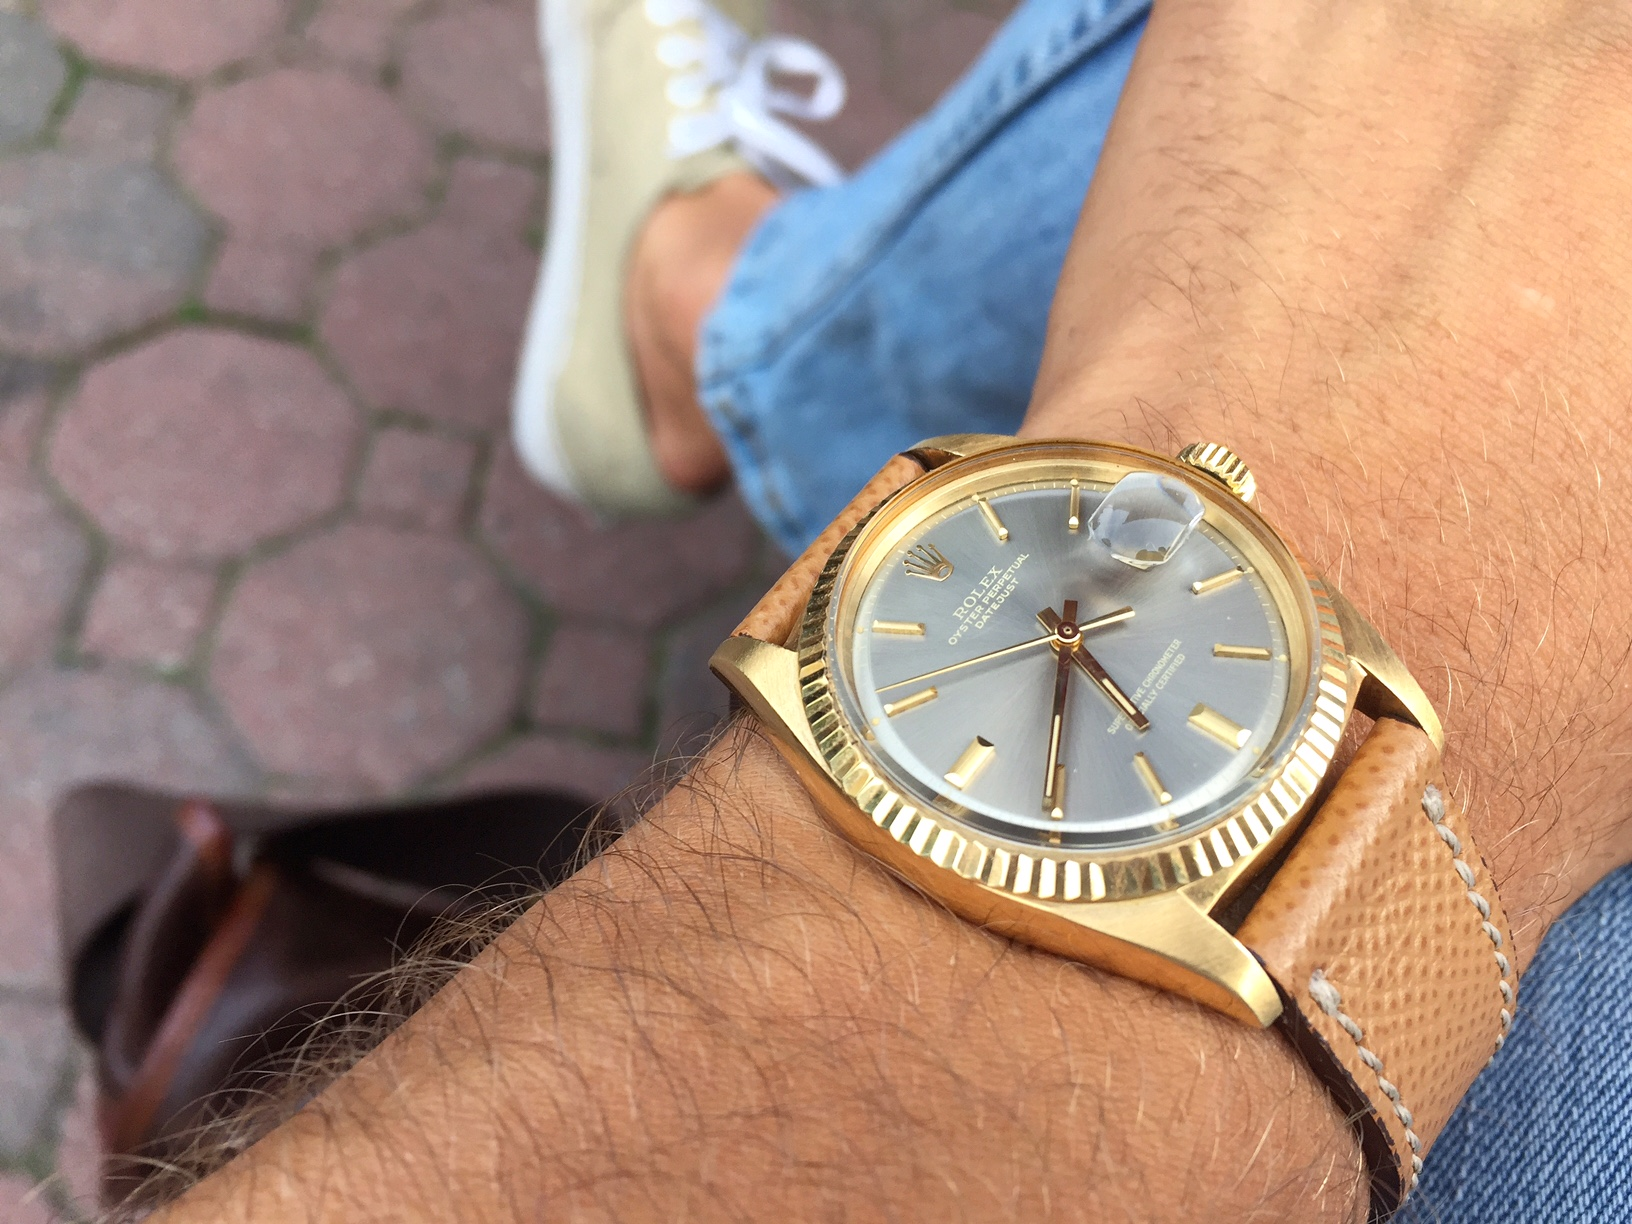 What Christian is wearing now, a Rolex Datejust Ref. 1601 with grey dial.